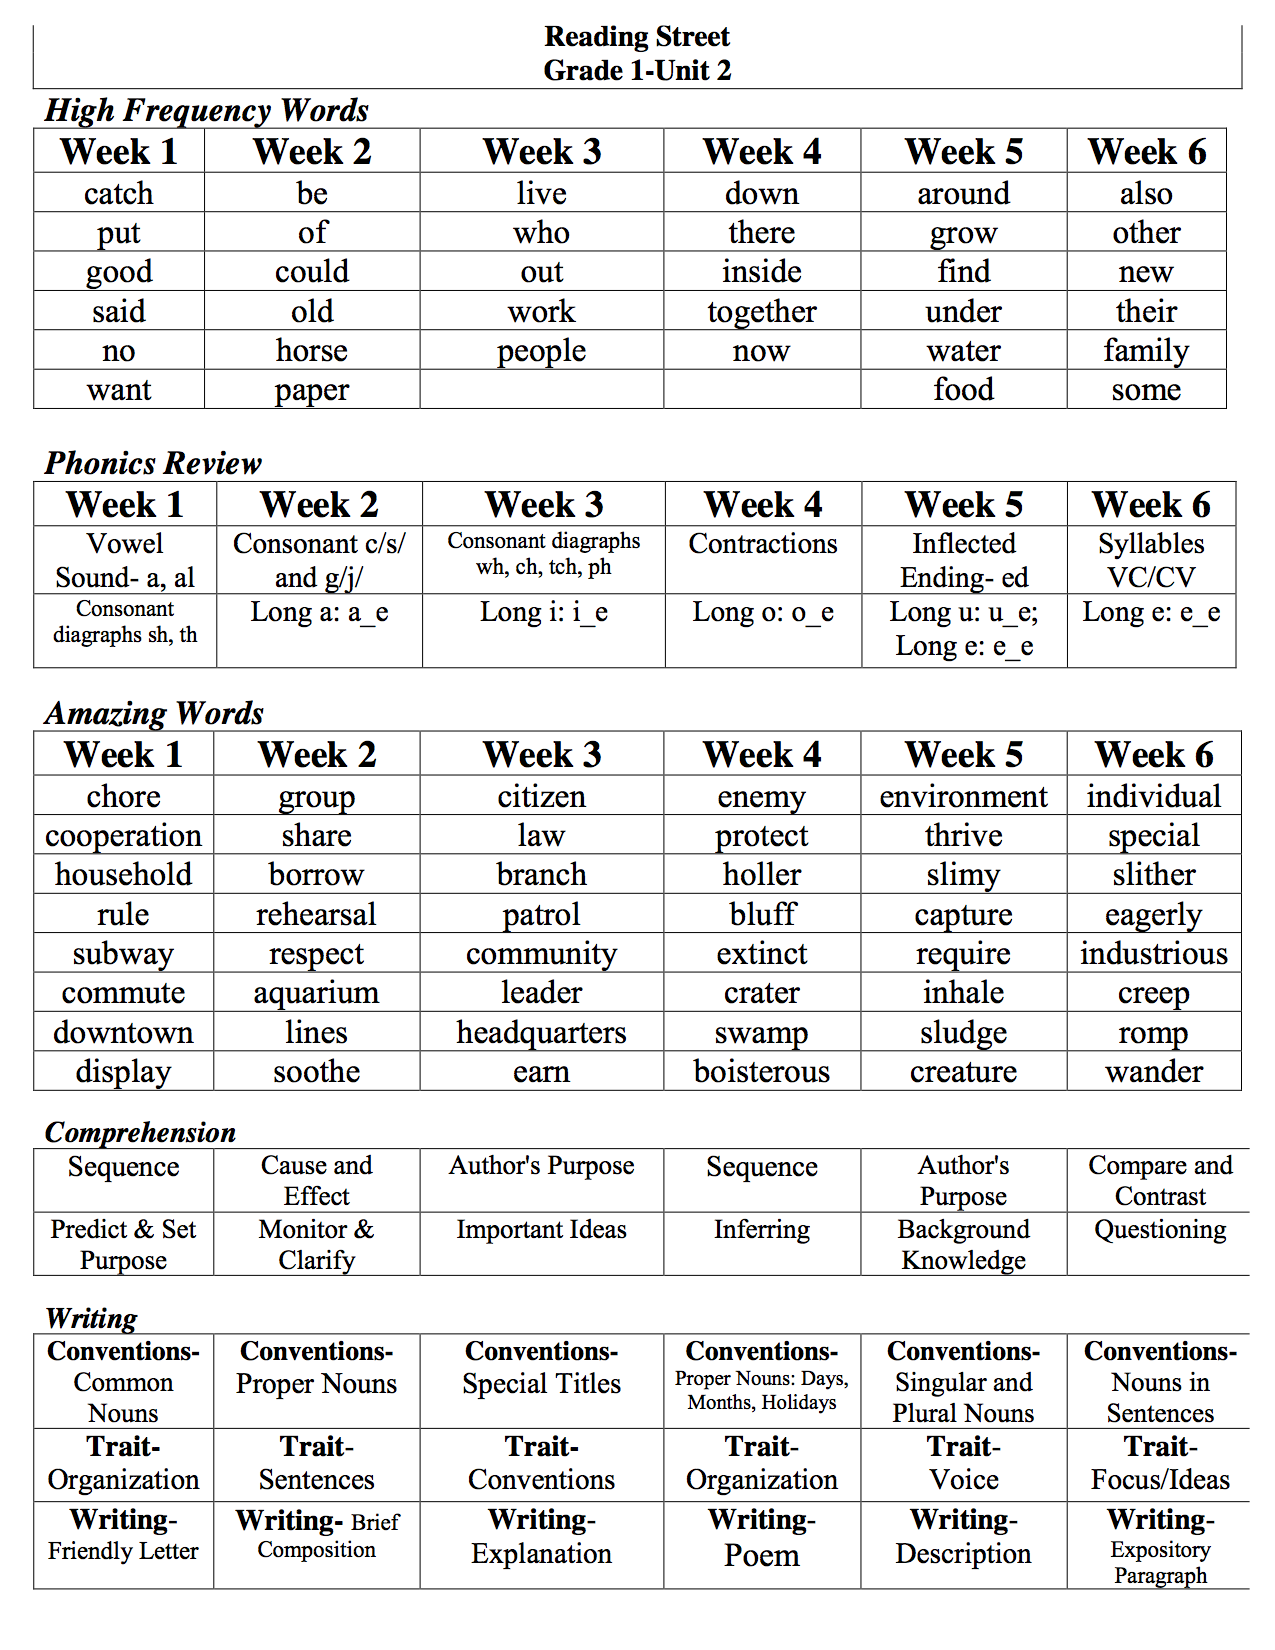 Skills Sheets For Unit 2 Reading Street Reading Street First Grade Reading Reading [ 1650 x 1275 Pixel ]